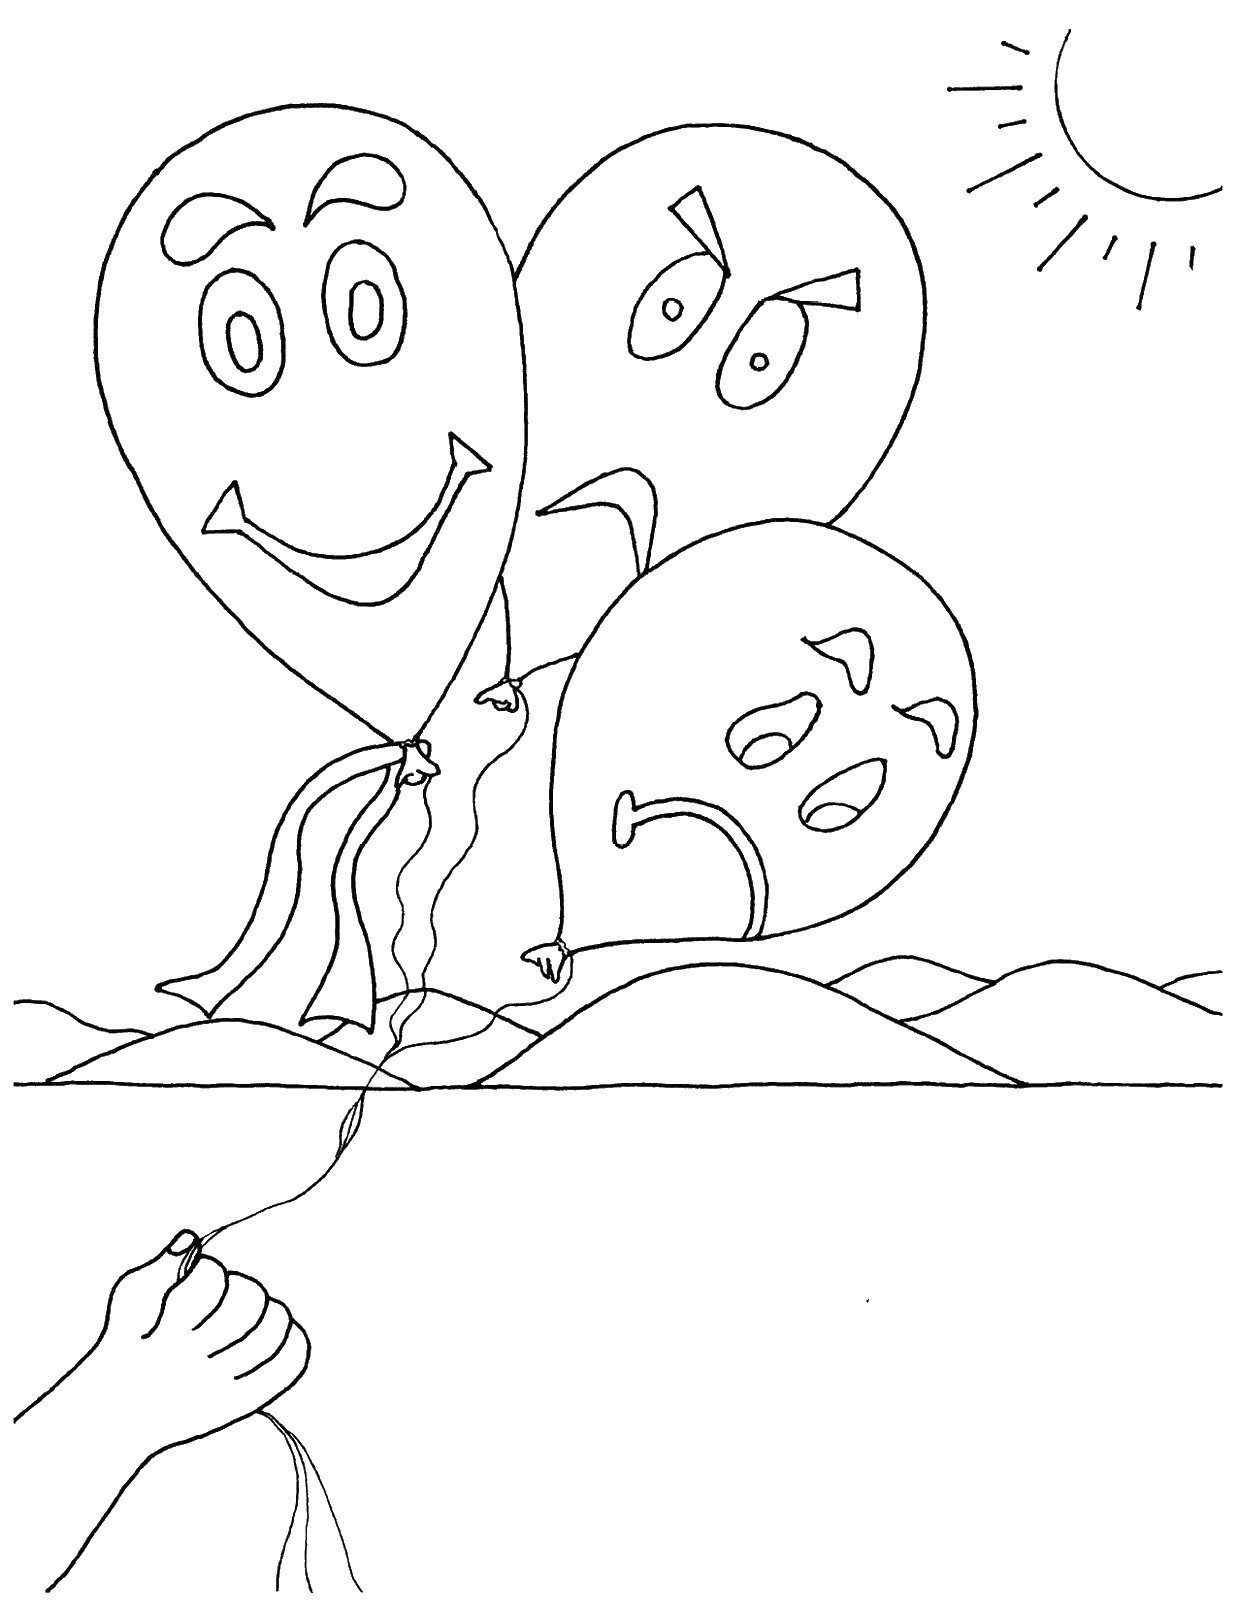 Emotions Coloring Pages At Getcolorings